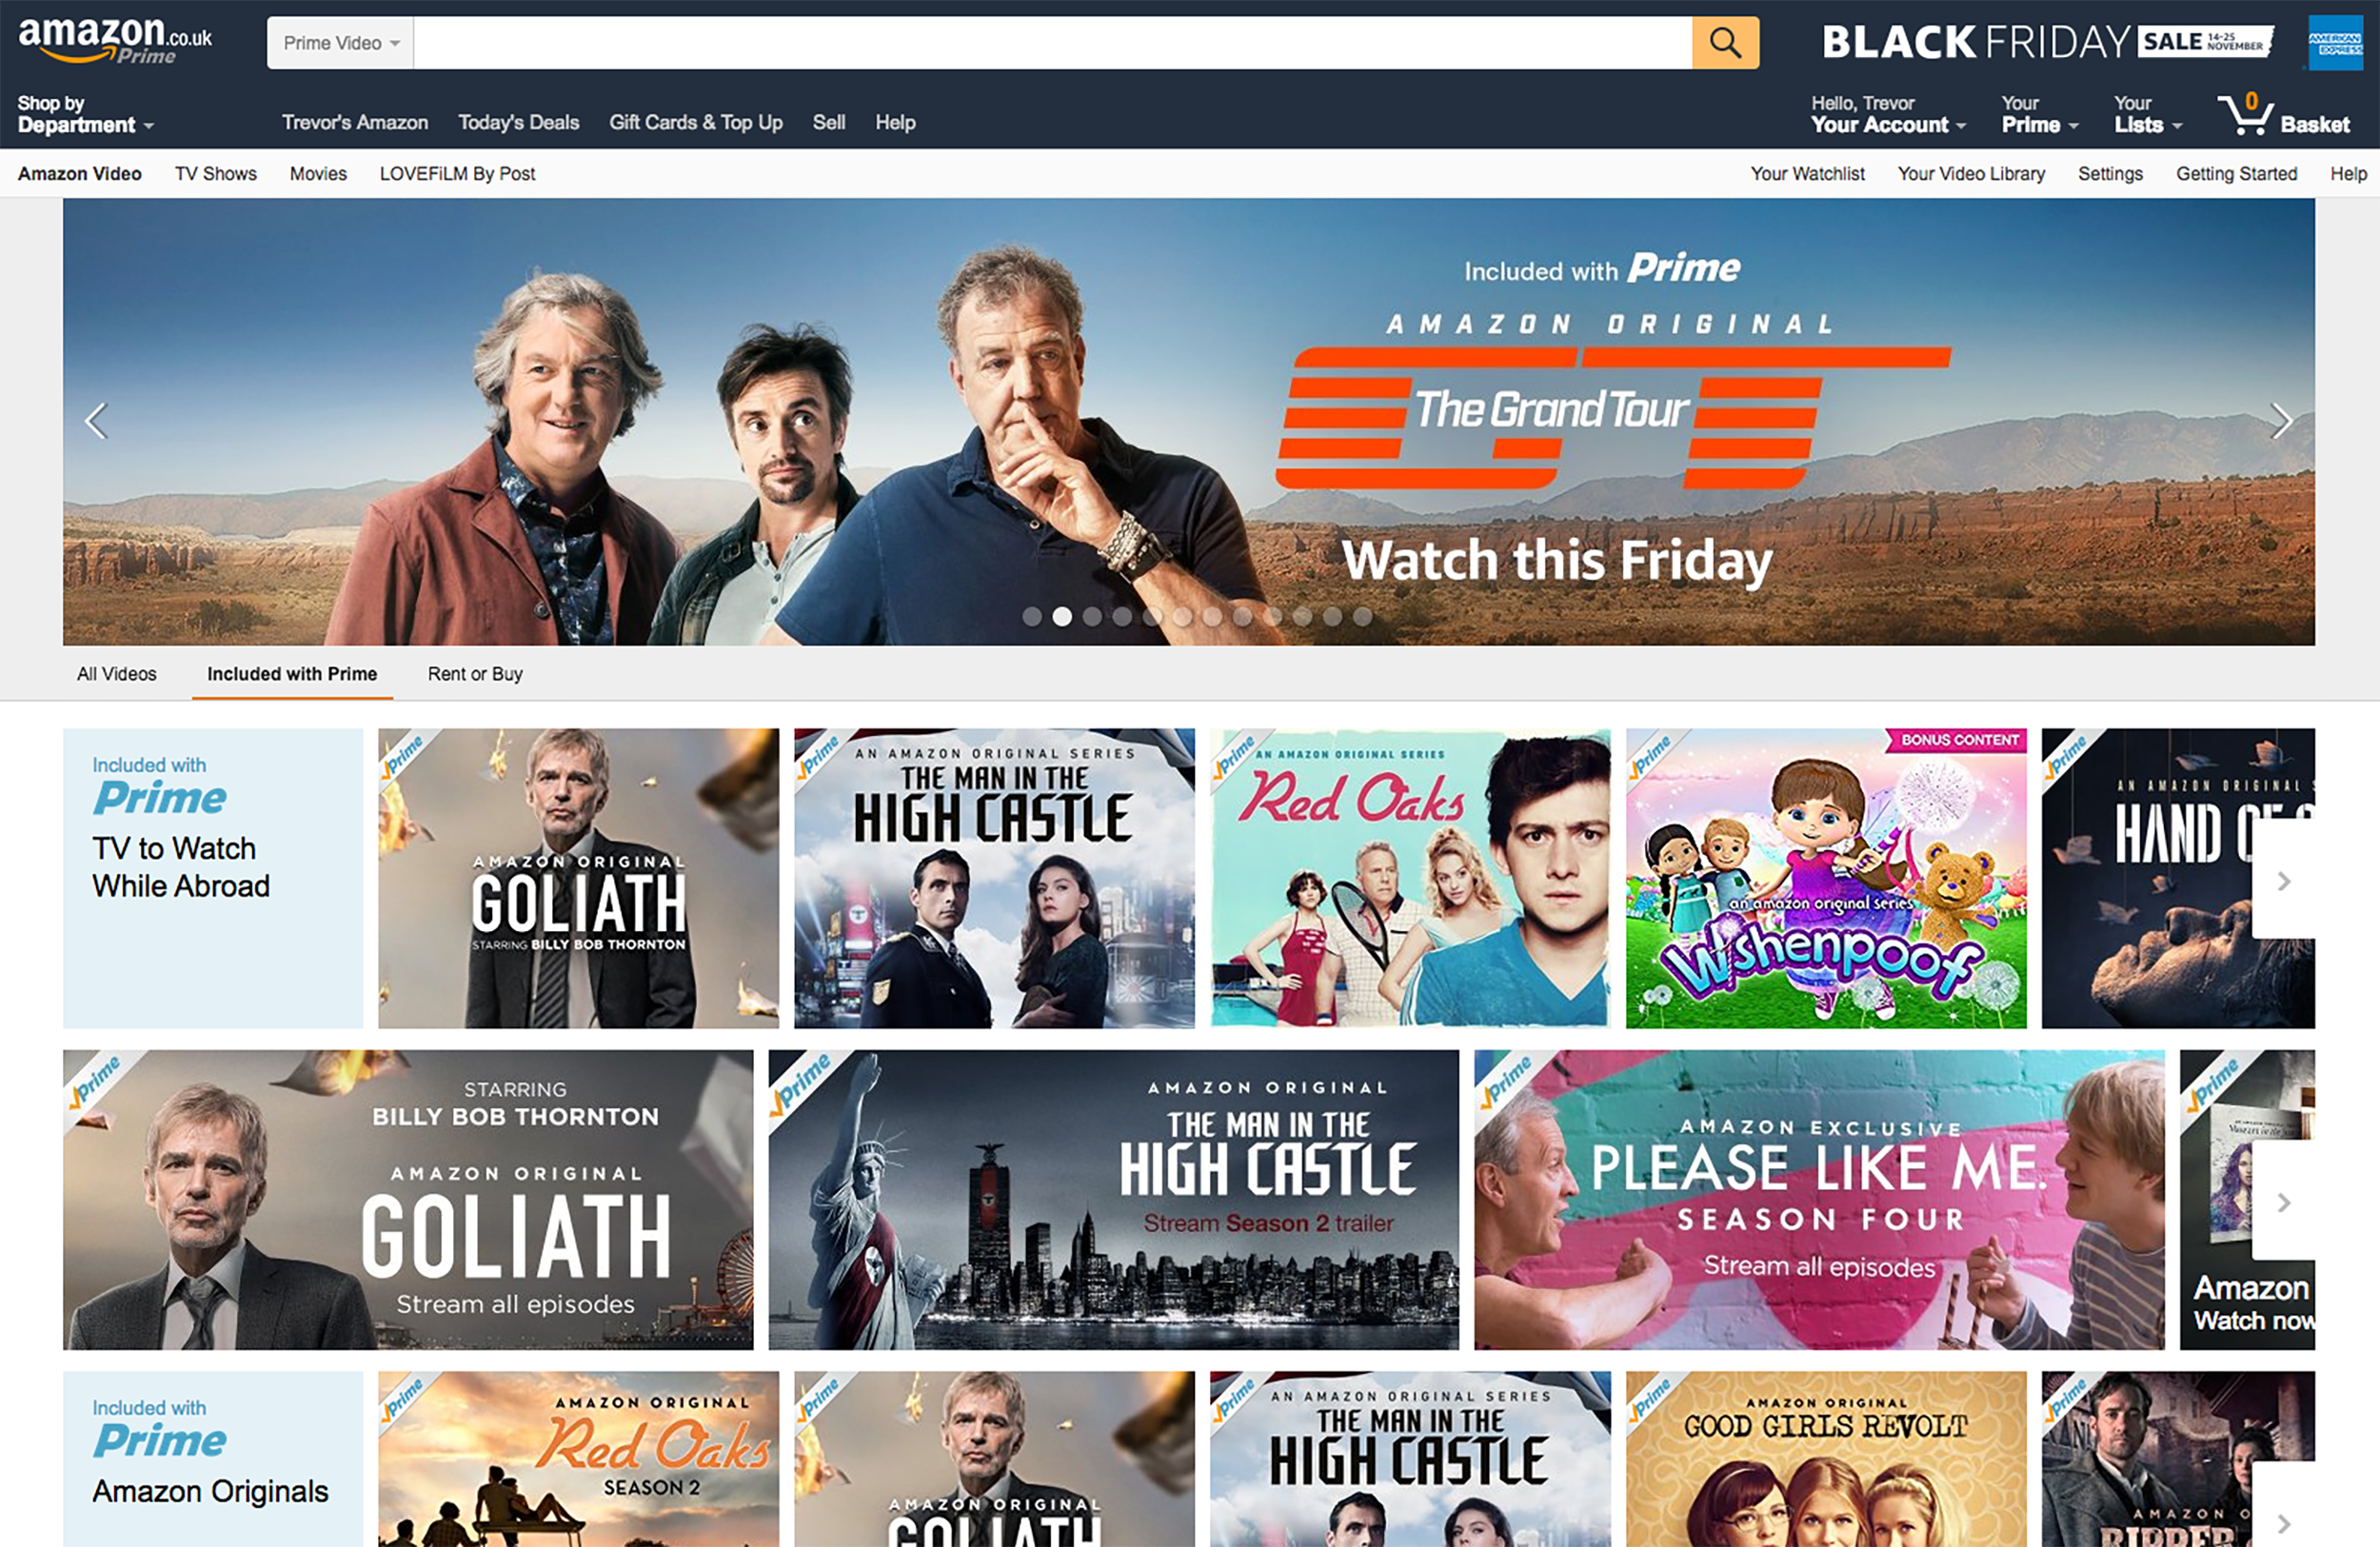 EXCLUSIVE: Amazon Prime Video available in Australia RIGHT